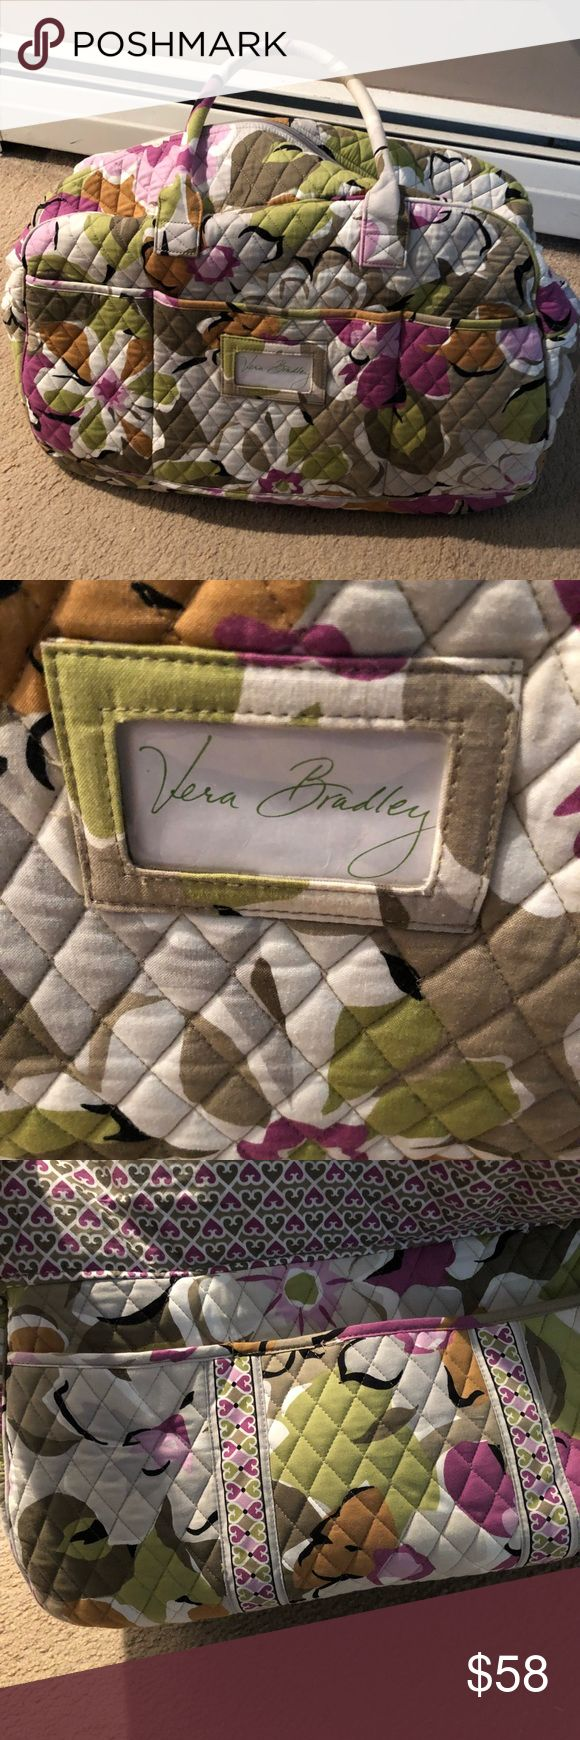 Vera Bradley travel Great Vera Bradley travel tote. Has plenty of wear left Ben used a handle of time. Taken care of and in good condition. Great color and good for those spring break or weekend get away Vera Bradley Bags Travel Bags